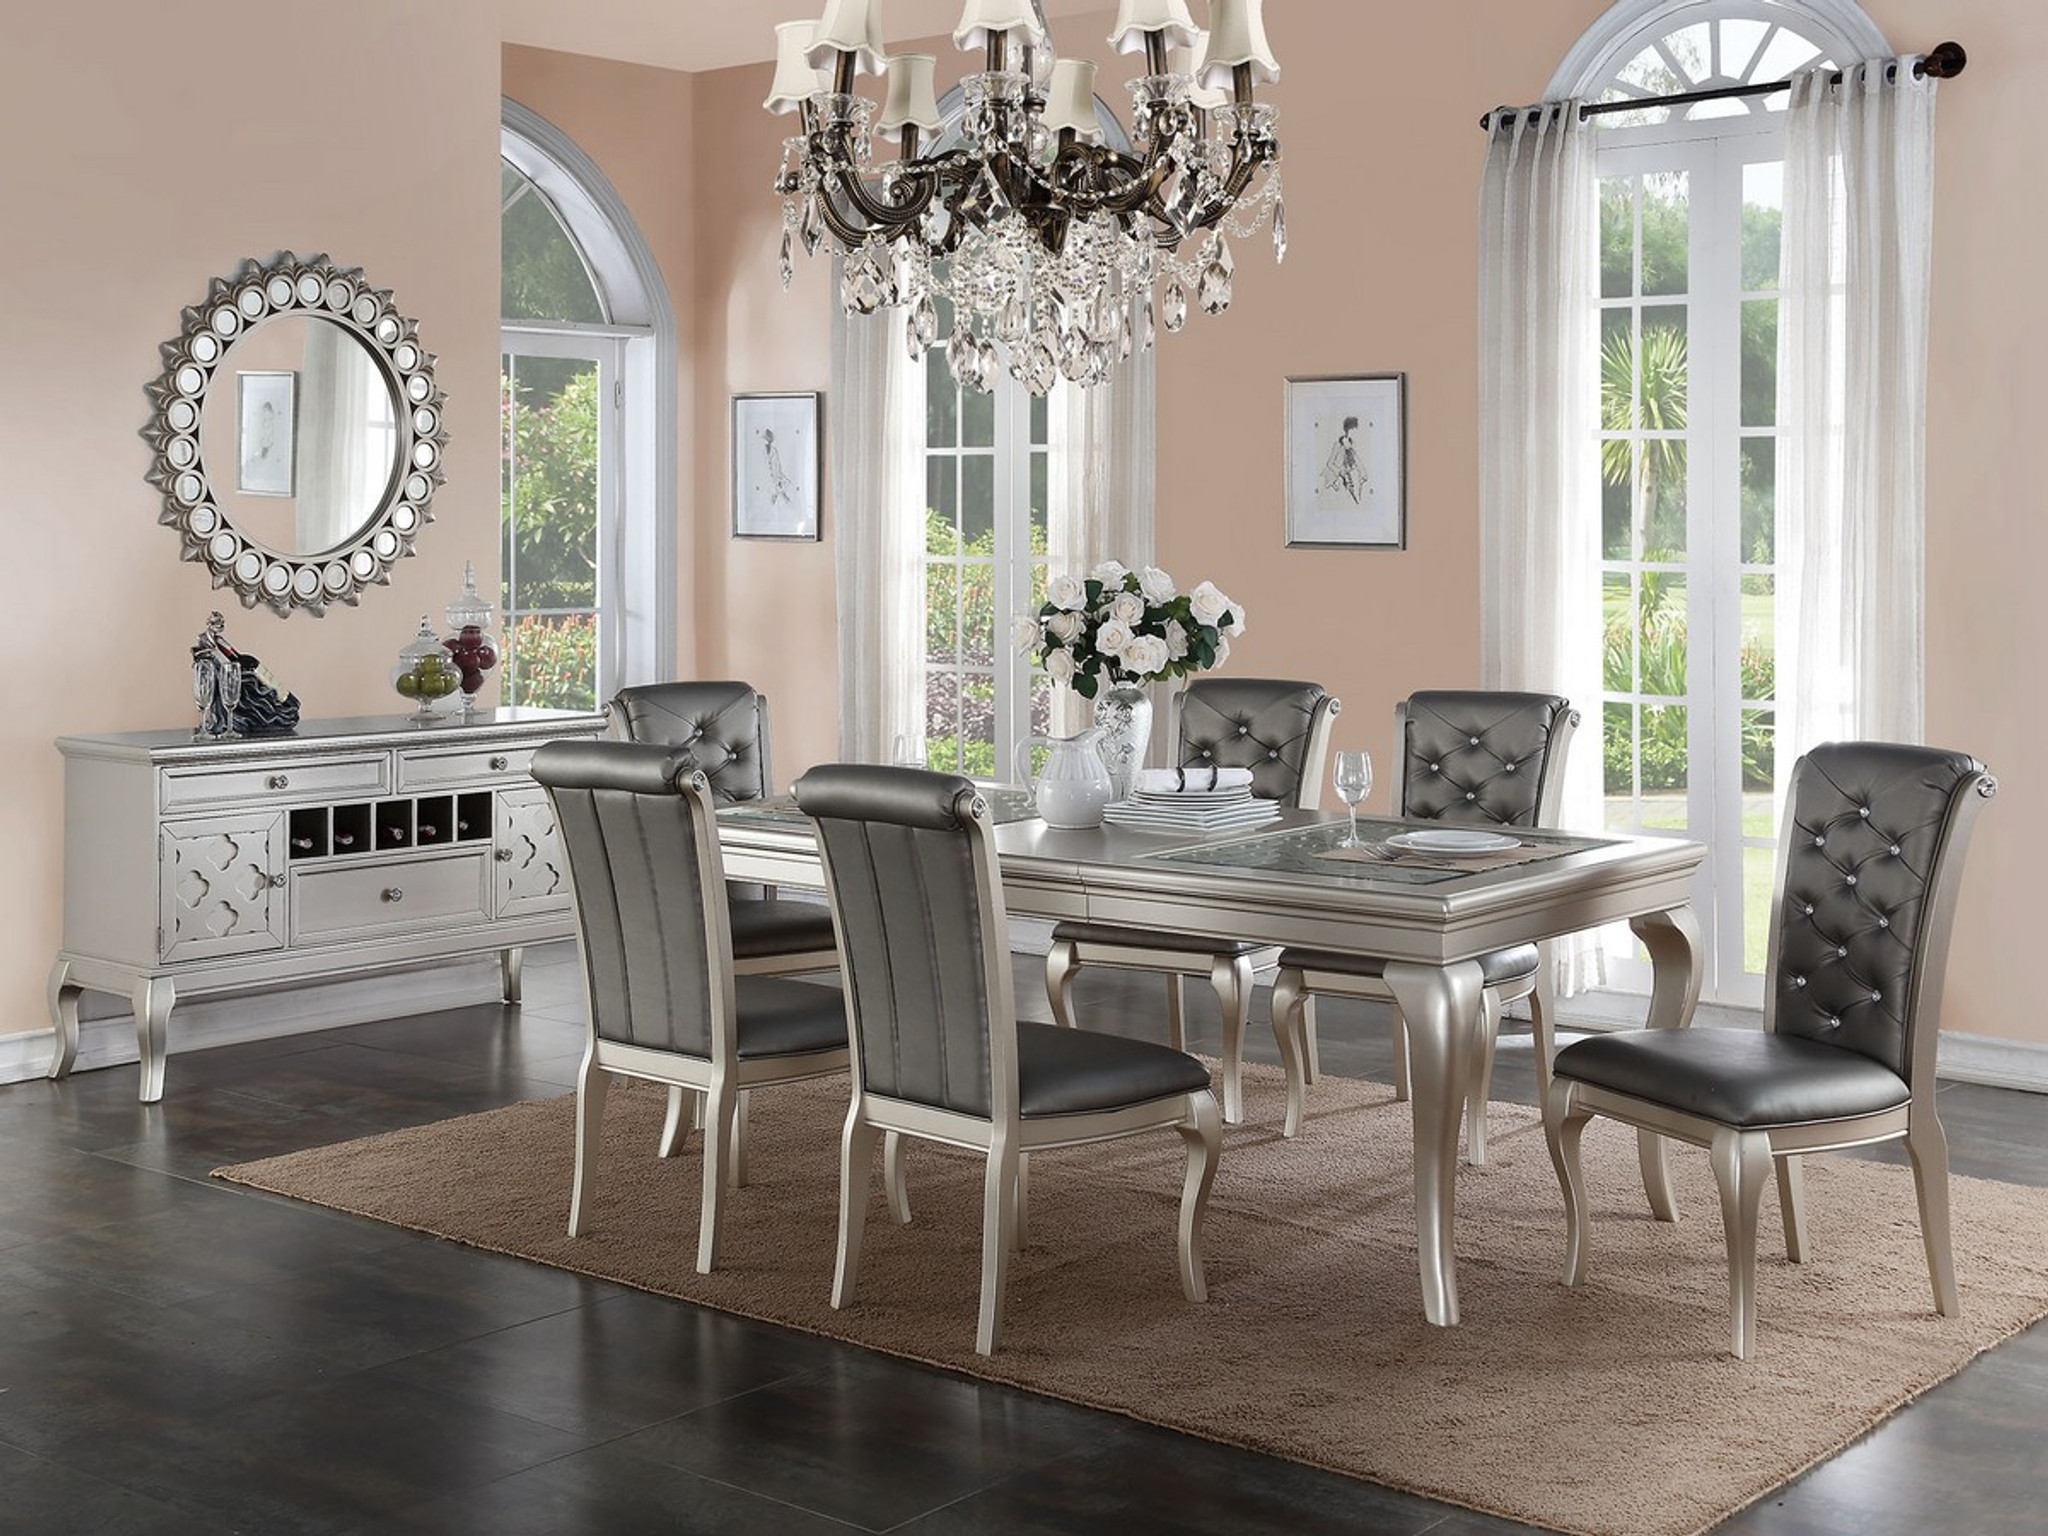 formal living room set home decorators kassa mall furniture f2151 f1540 f6067 5 piece dining table in antique silver finish